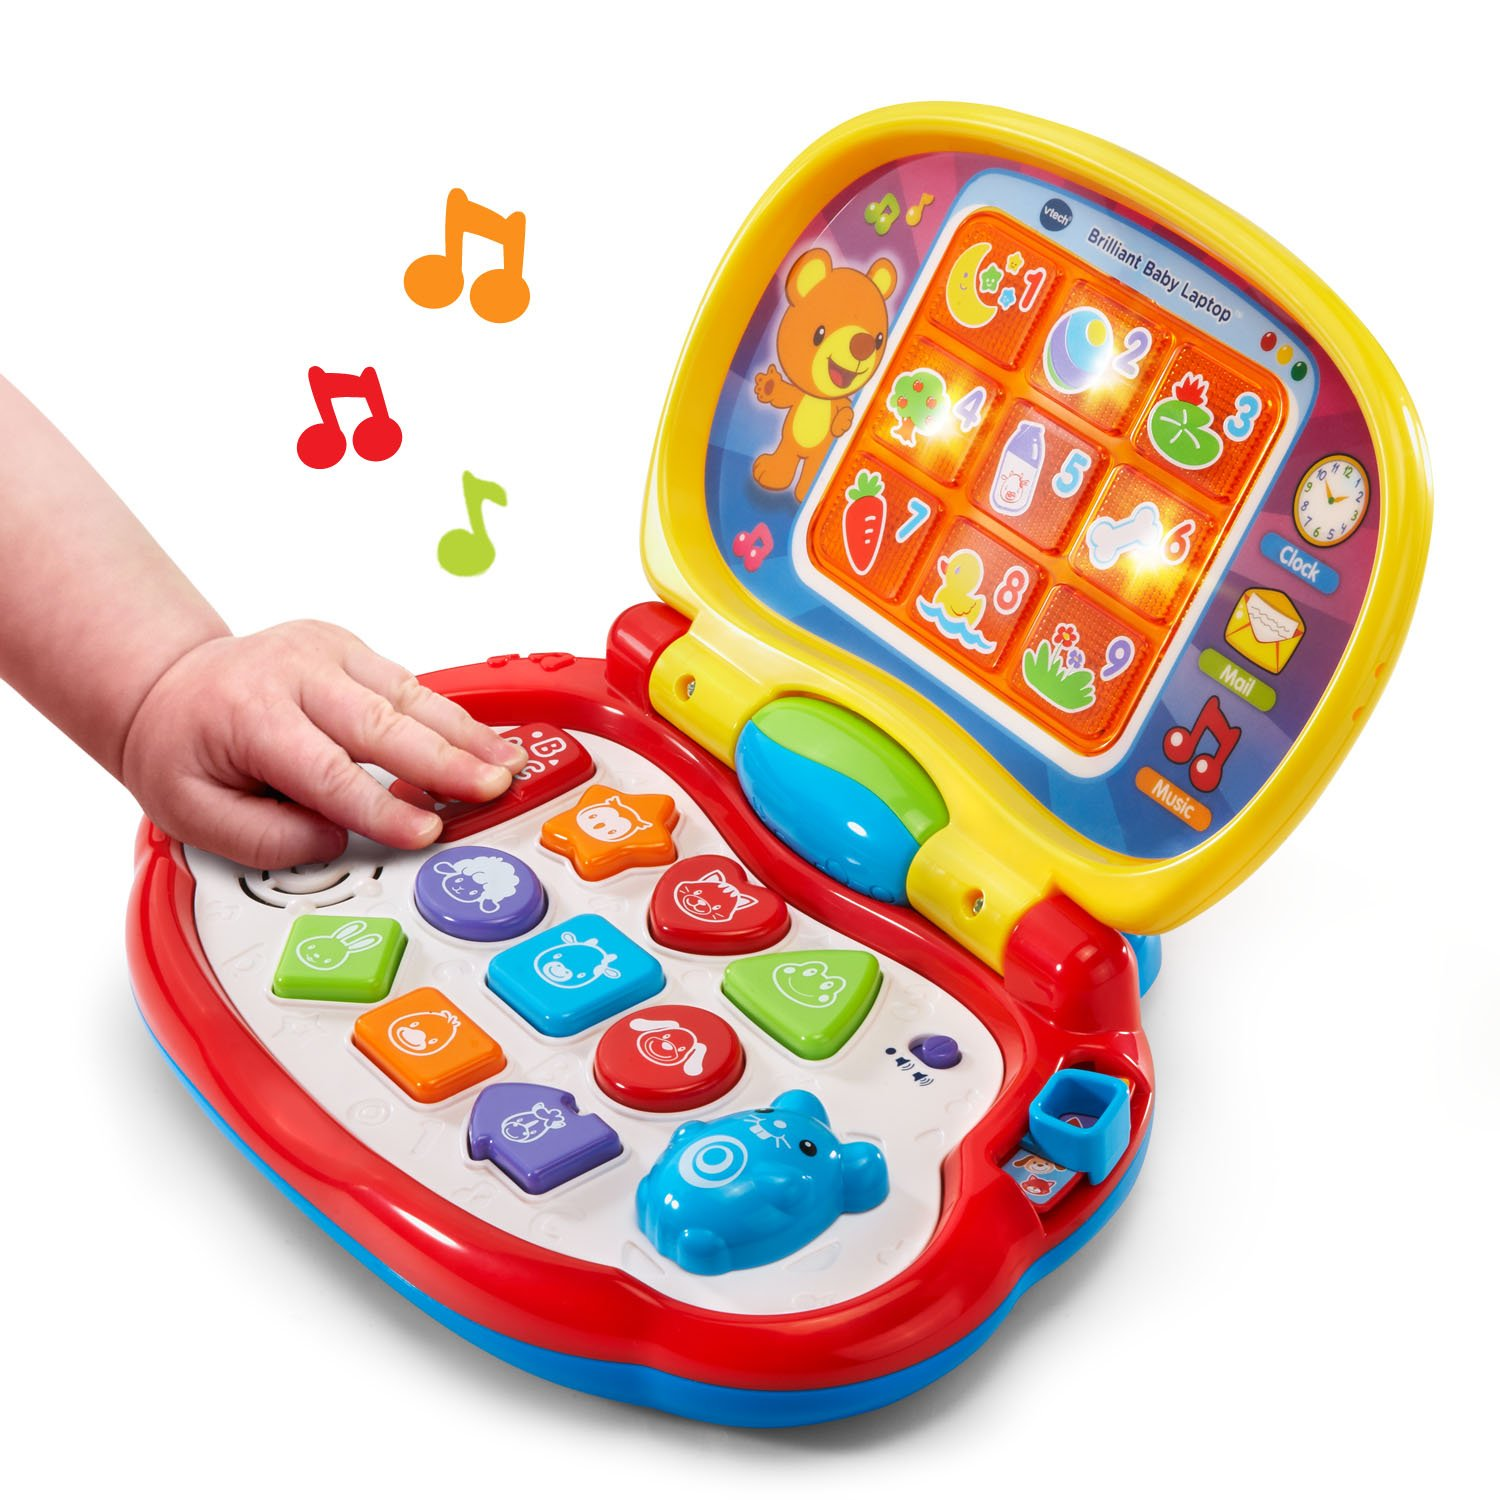 VTech Brilliant Baby Laptop,red by VTech (Image #3)